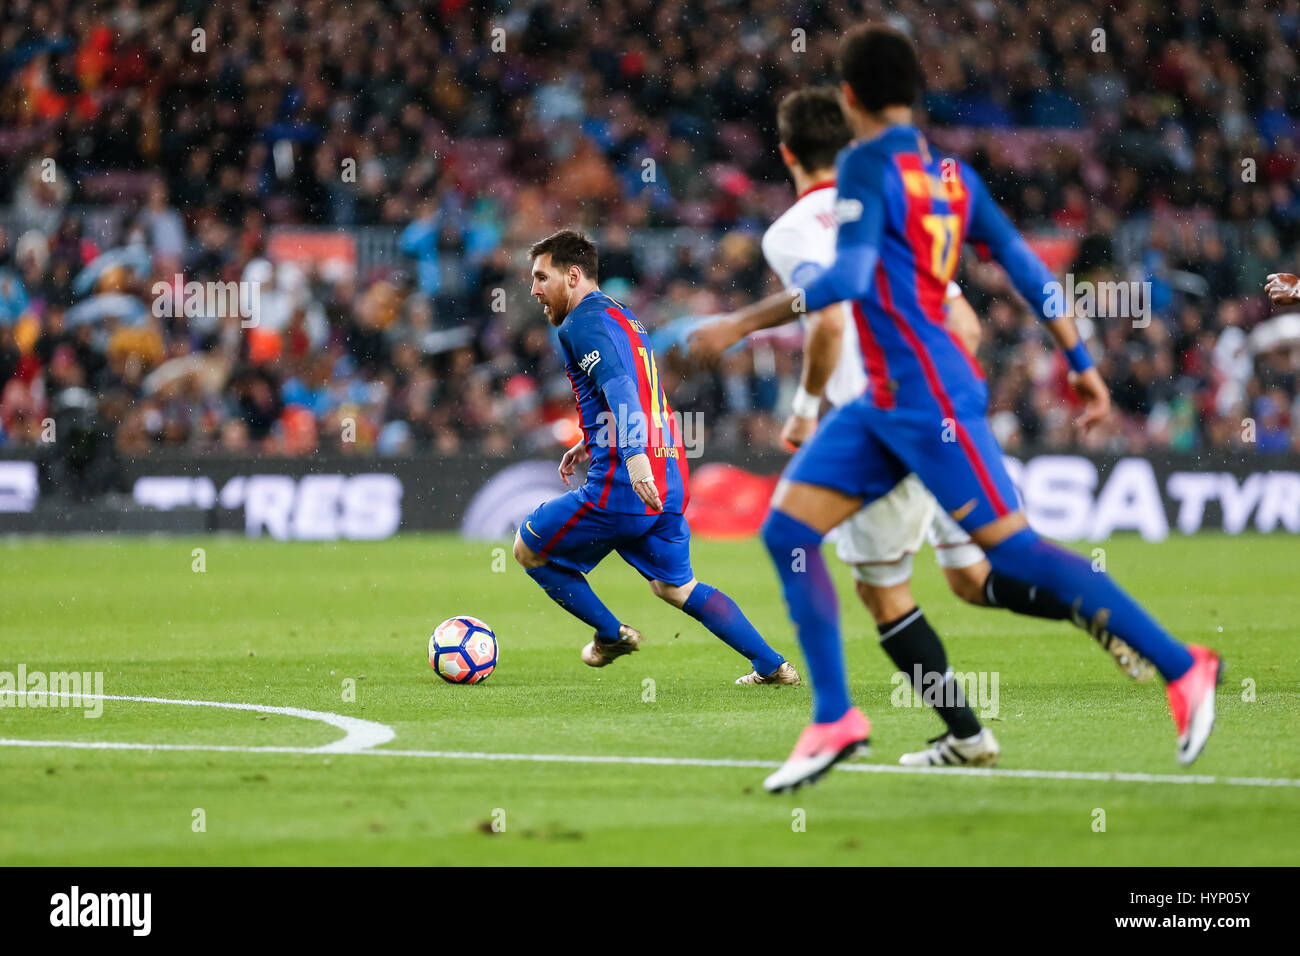 April 5, 2017: Leo Messi during the match between FC Barcelona vs Sevilla, for the round 30 of the Liga Santander, - Stock Image